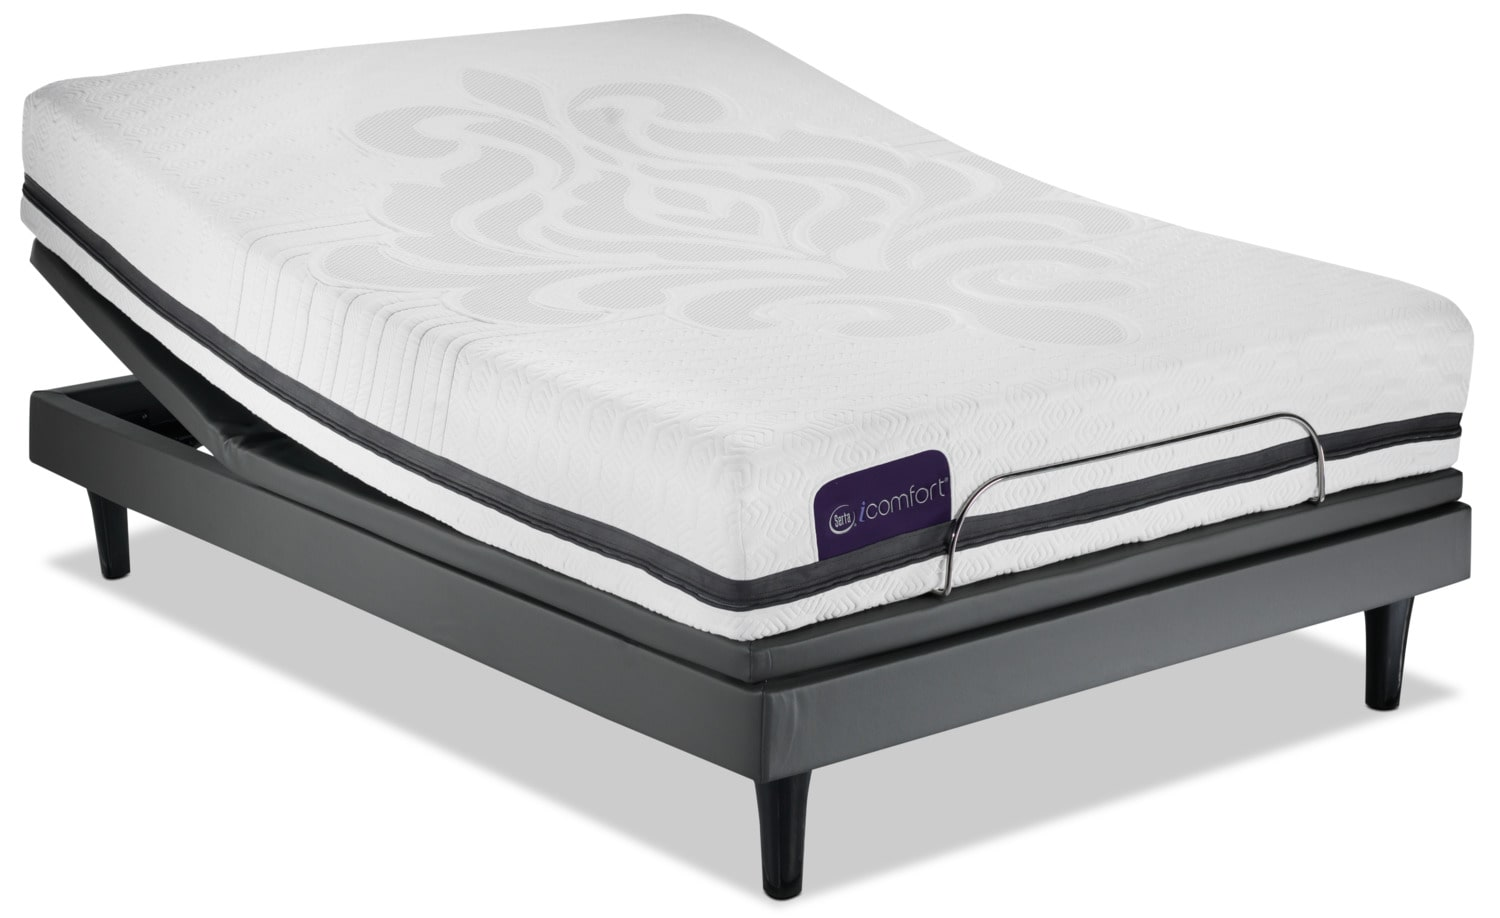 Serta iComfort Eco Contingence Firm Twin XL Mattress/Motion Perfect III Complete Adjustable Base